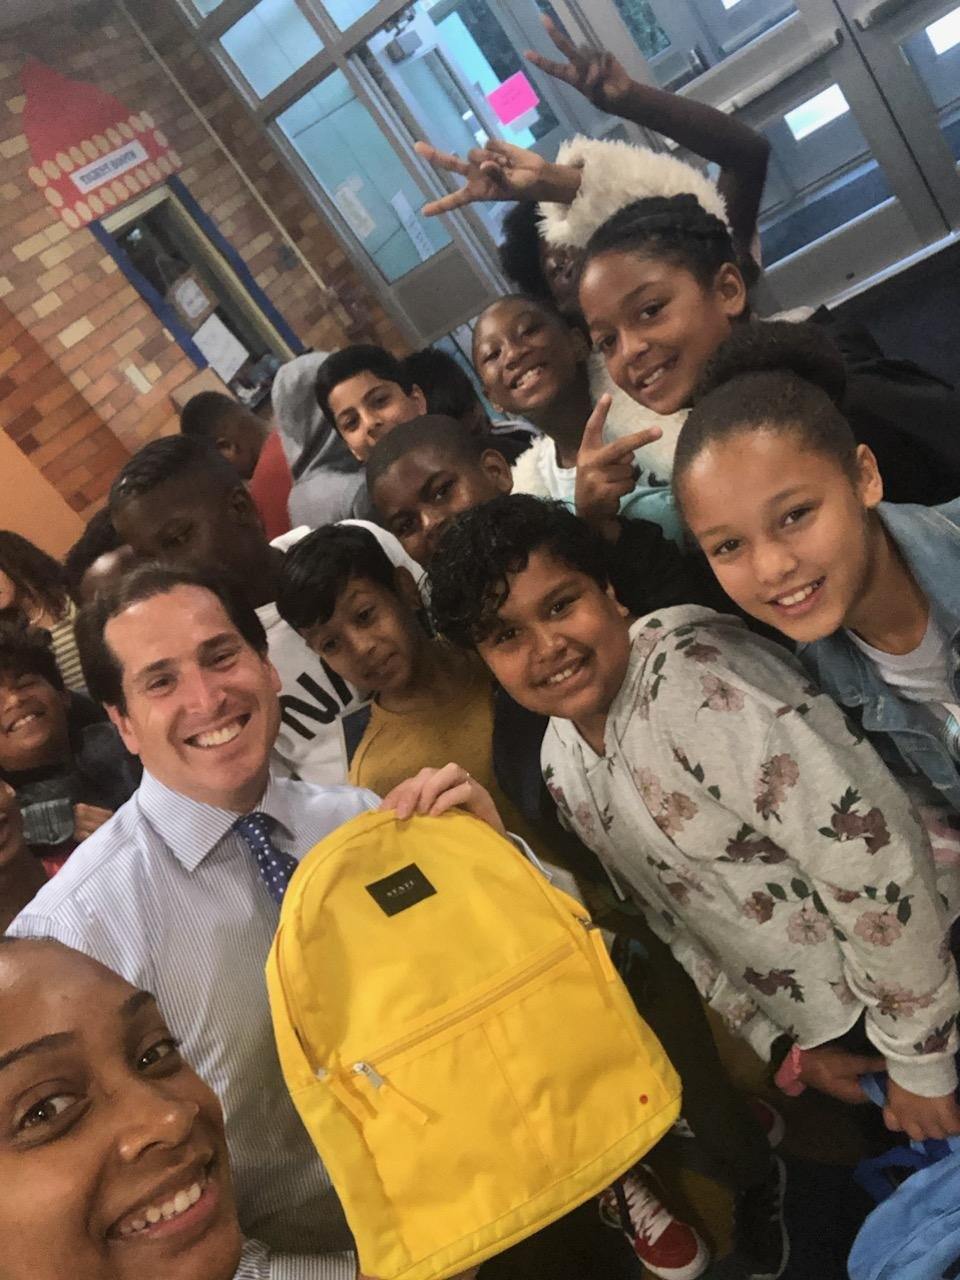 State Sen. Todd Kaminsky helped spearhead the effort to supply every student at Shaw Avenue with backpacks.